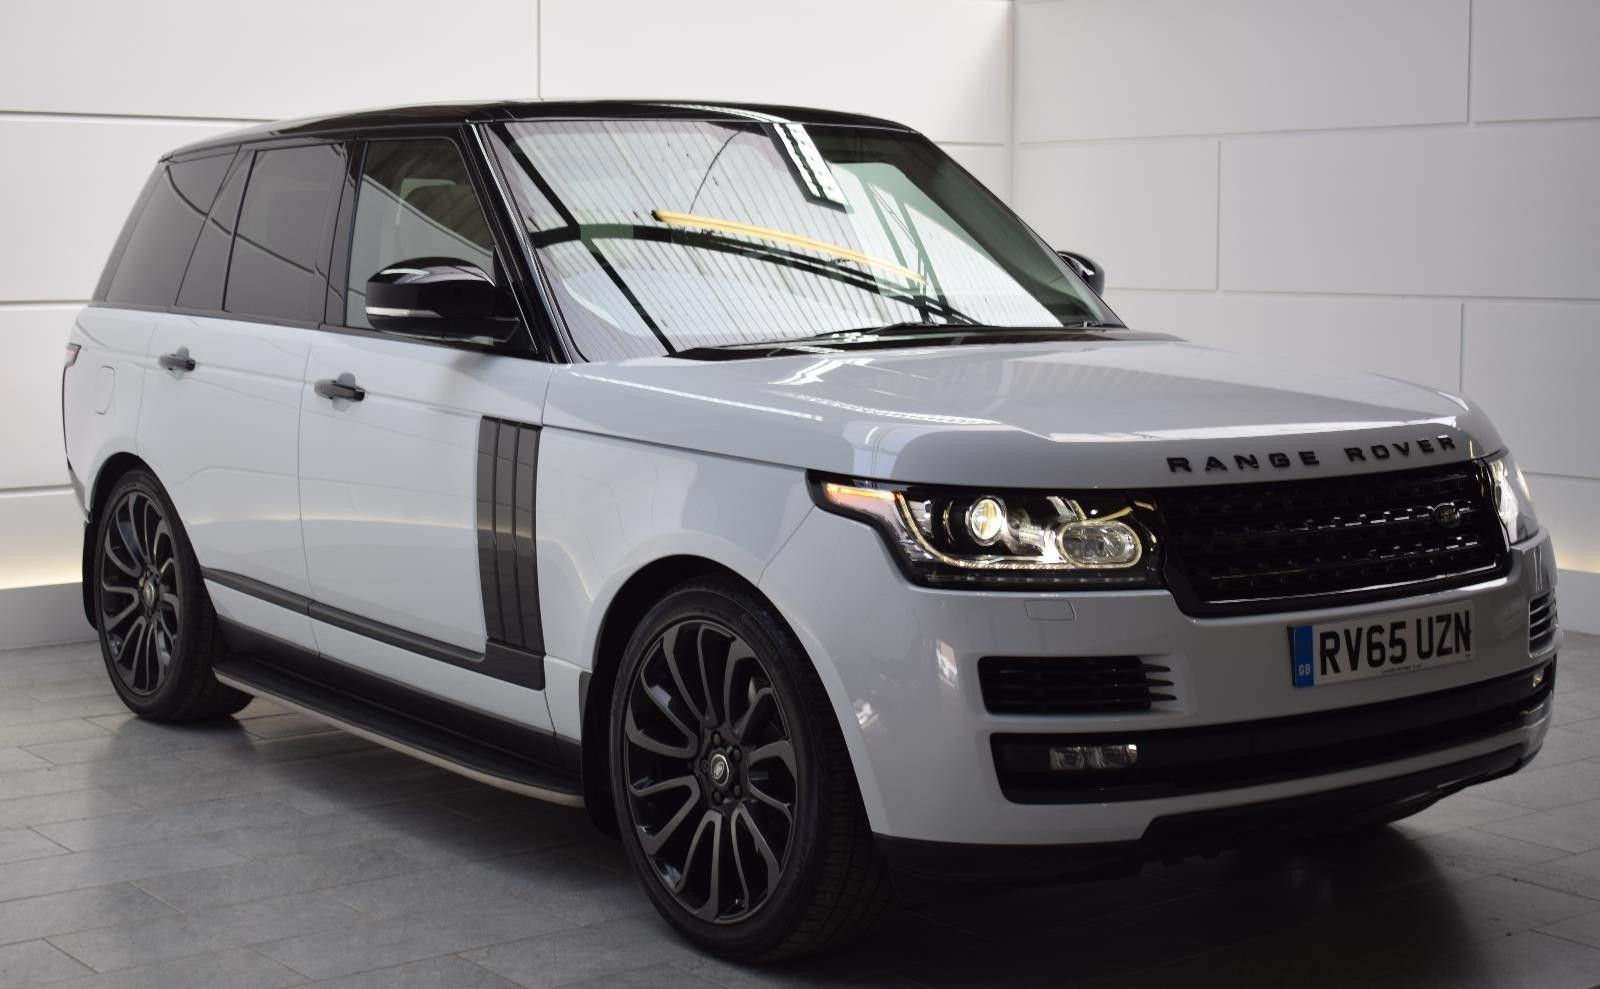 yulong white range rover autos and toys range rover. Black Bedroom Furniture Sets. Home Design Ideas